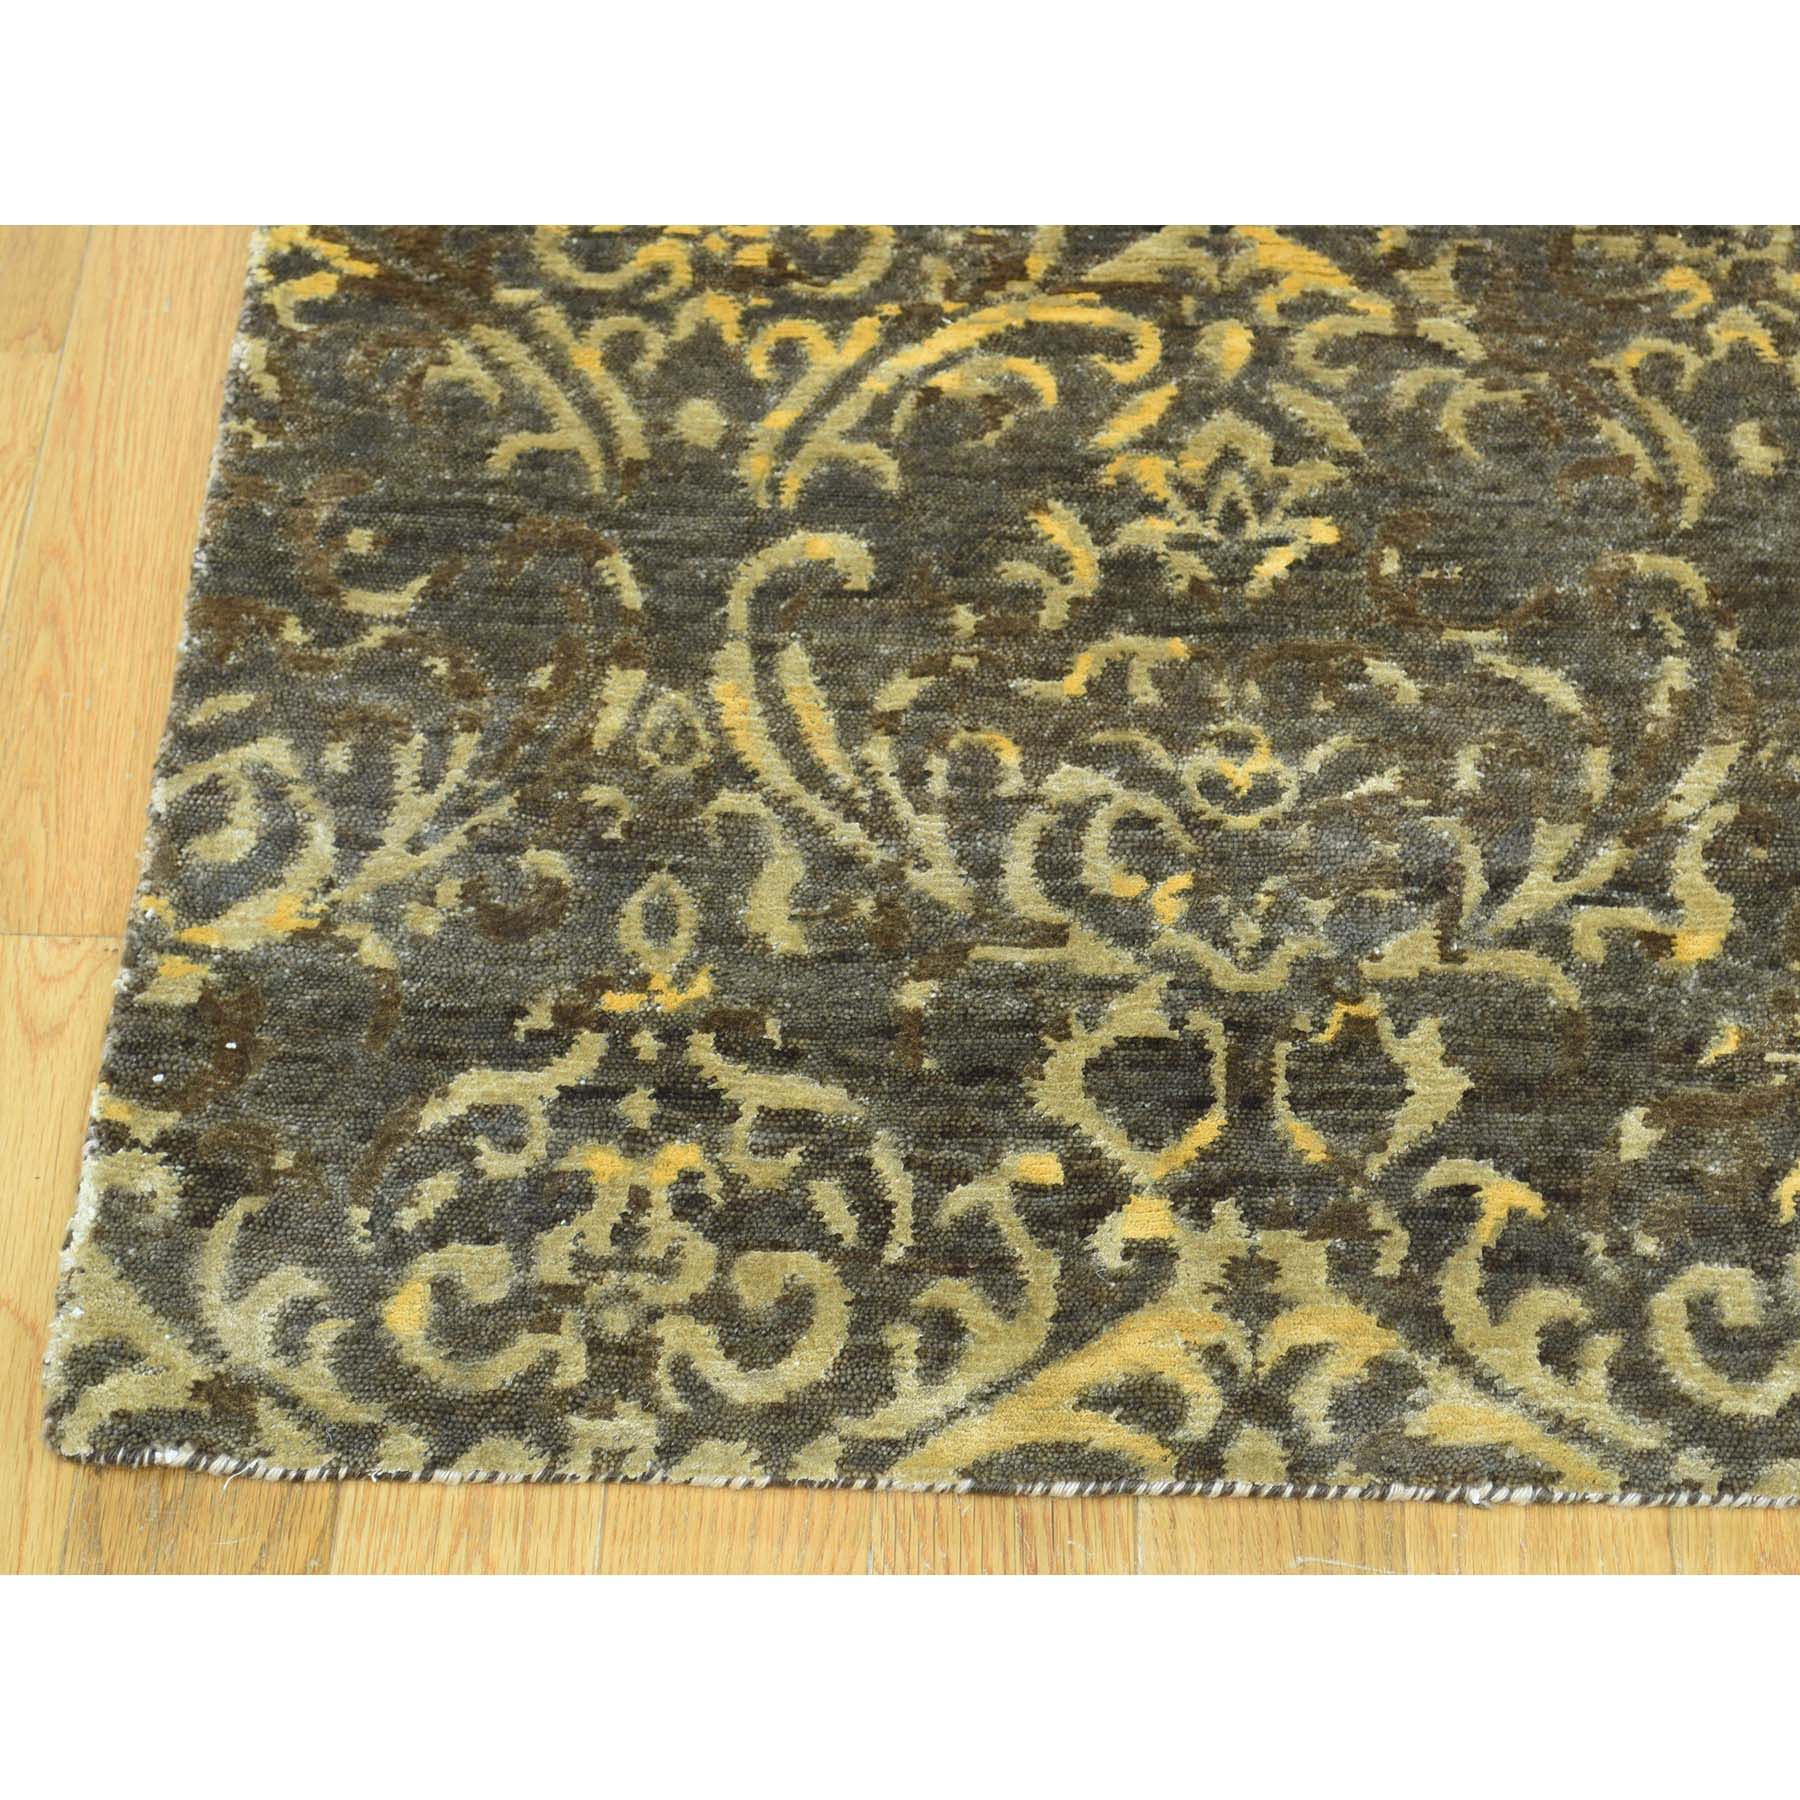 """4'6""""x18'3"""" Hand-Knotted Tone on Tone Damask Wool and Silk Gallery Rug"""